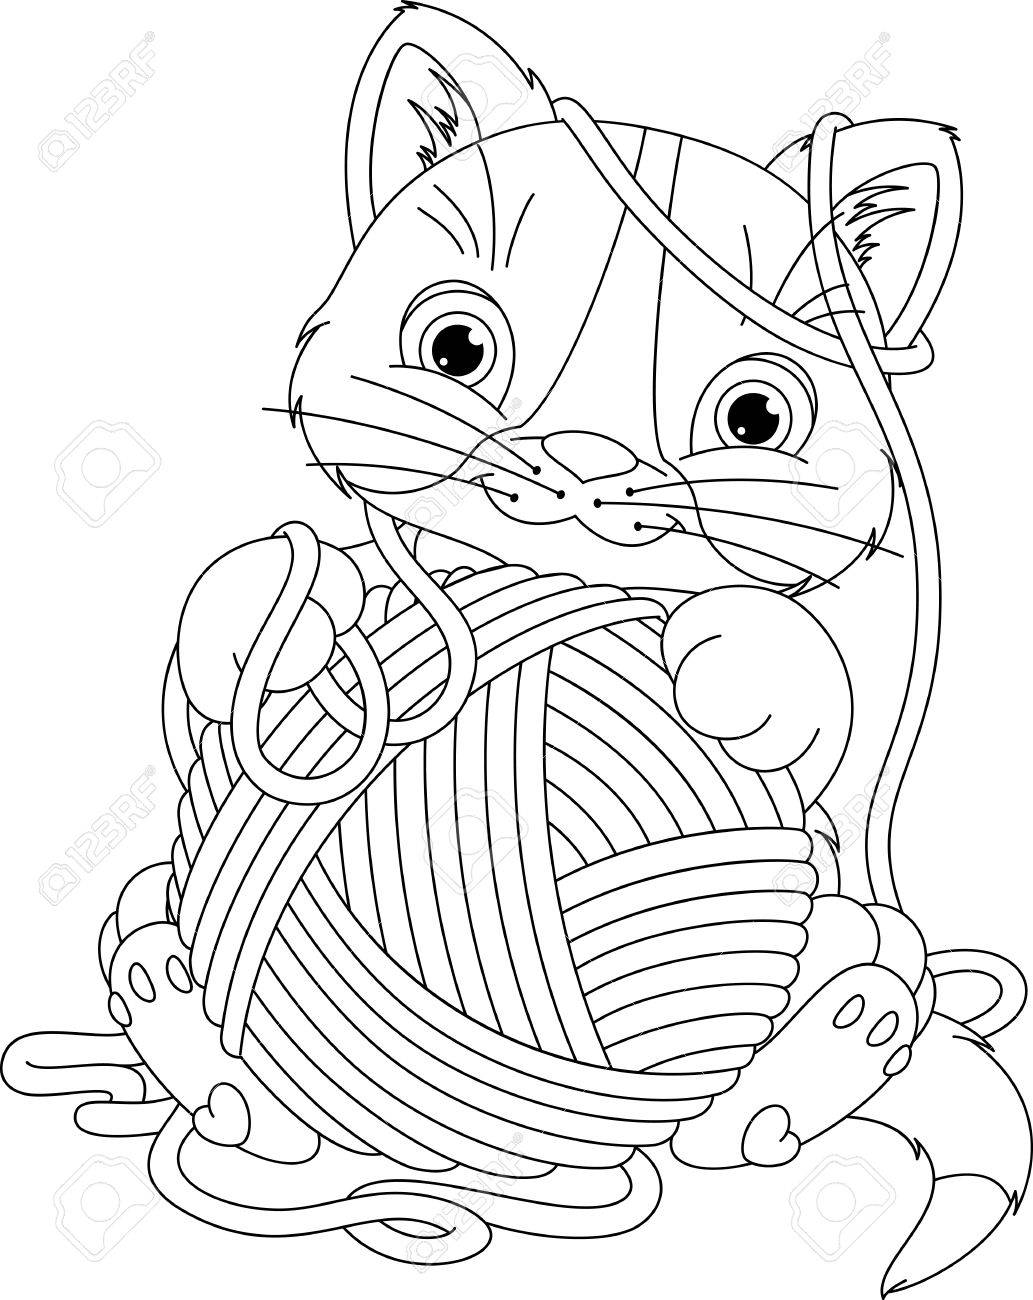 Kitten With Yarn Ball Coloring Page Royalty Free Cliparts, Vectors ...